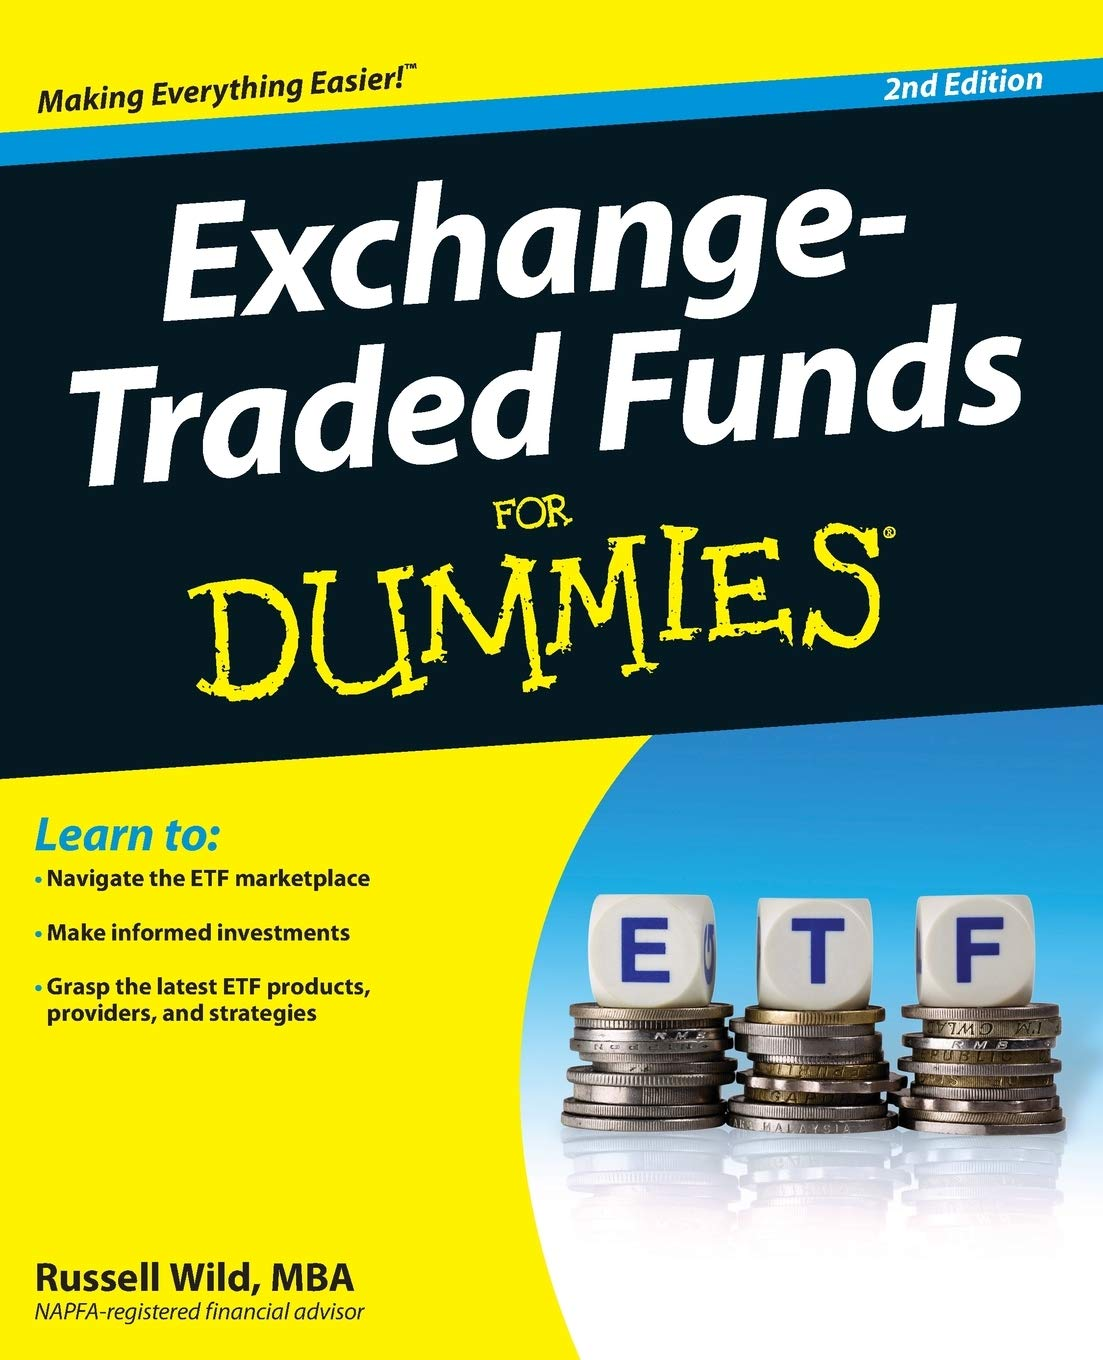 Image OfExchange-Traded Funds For Dummies